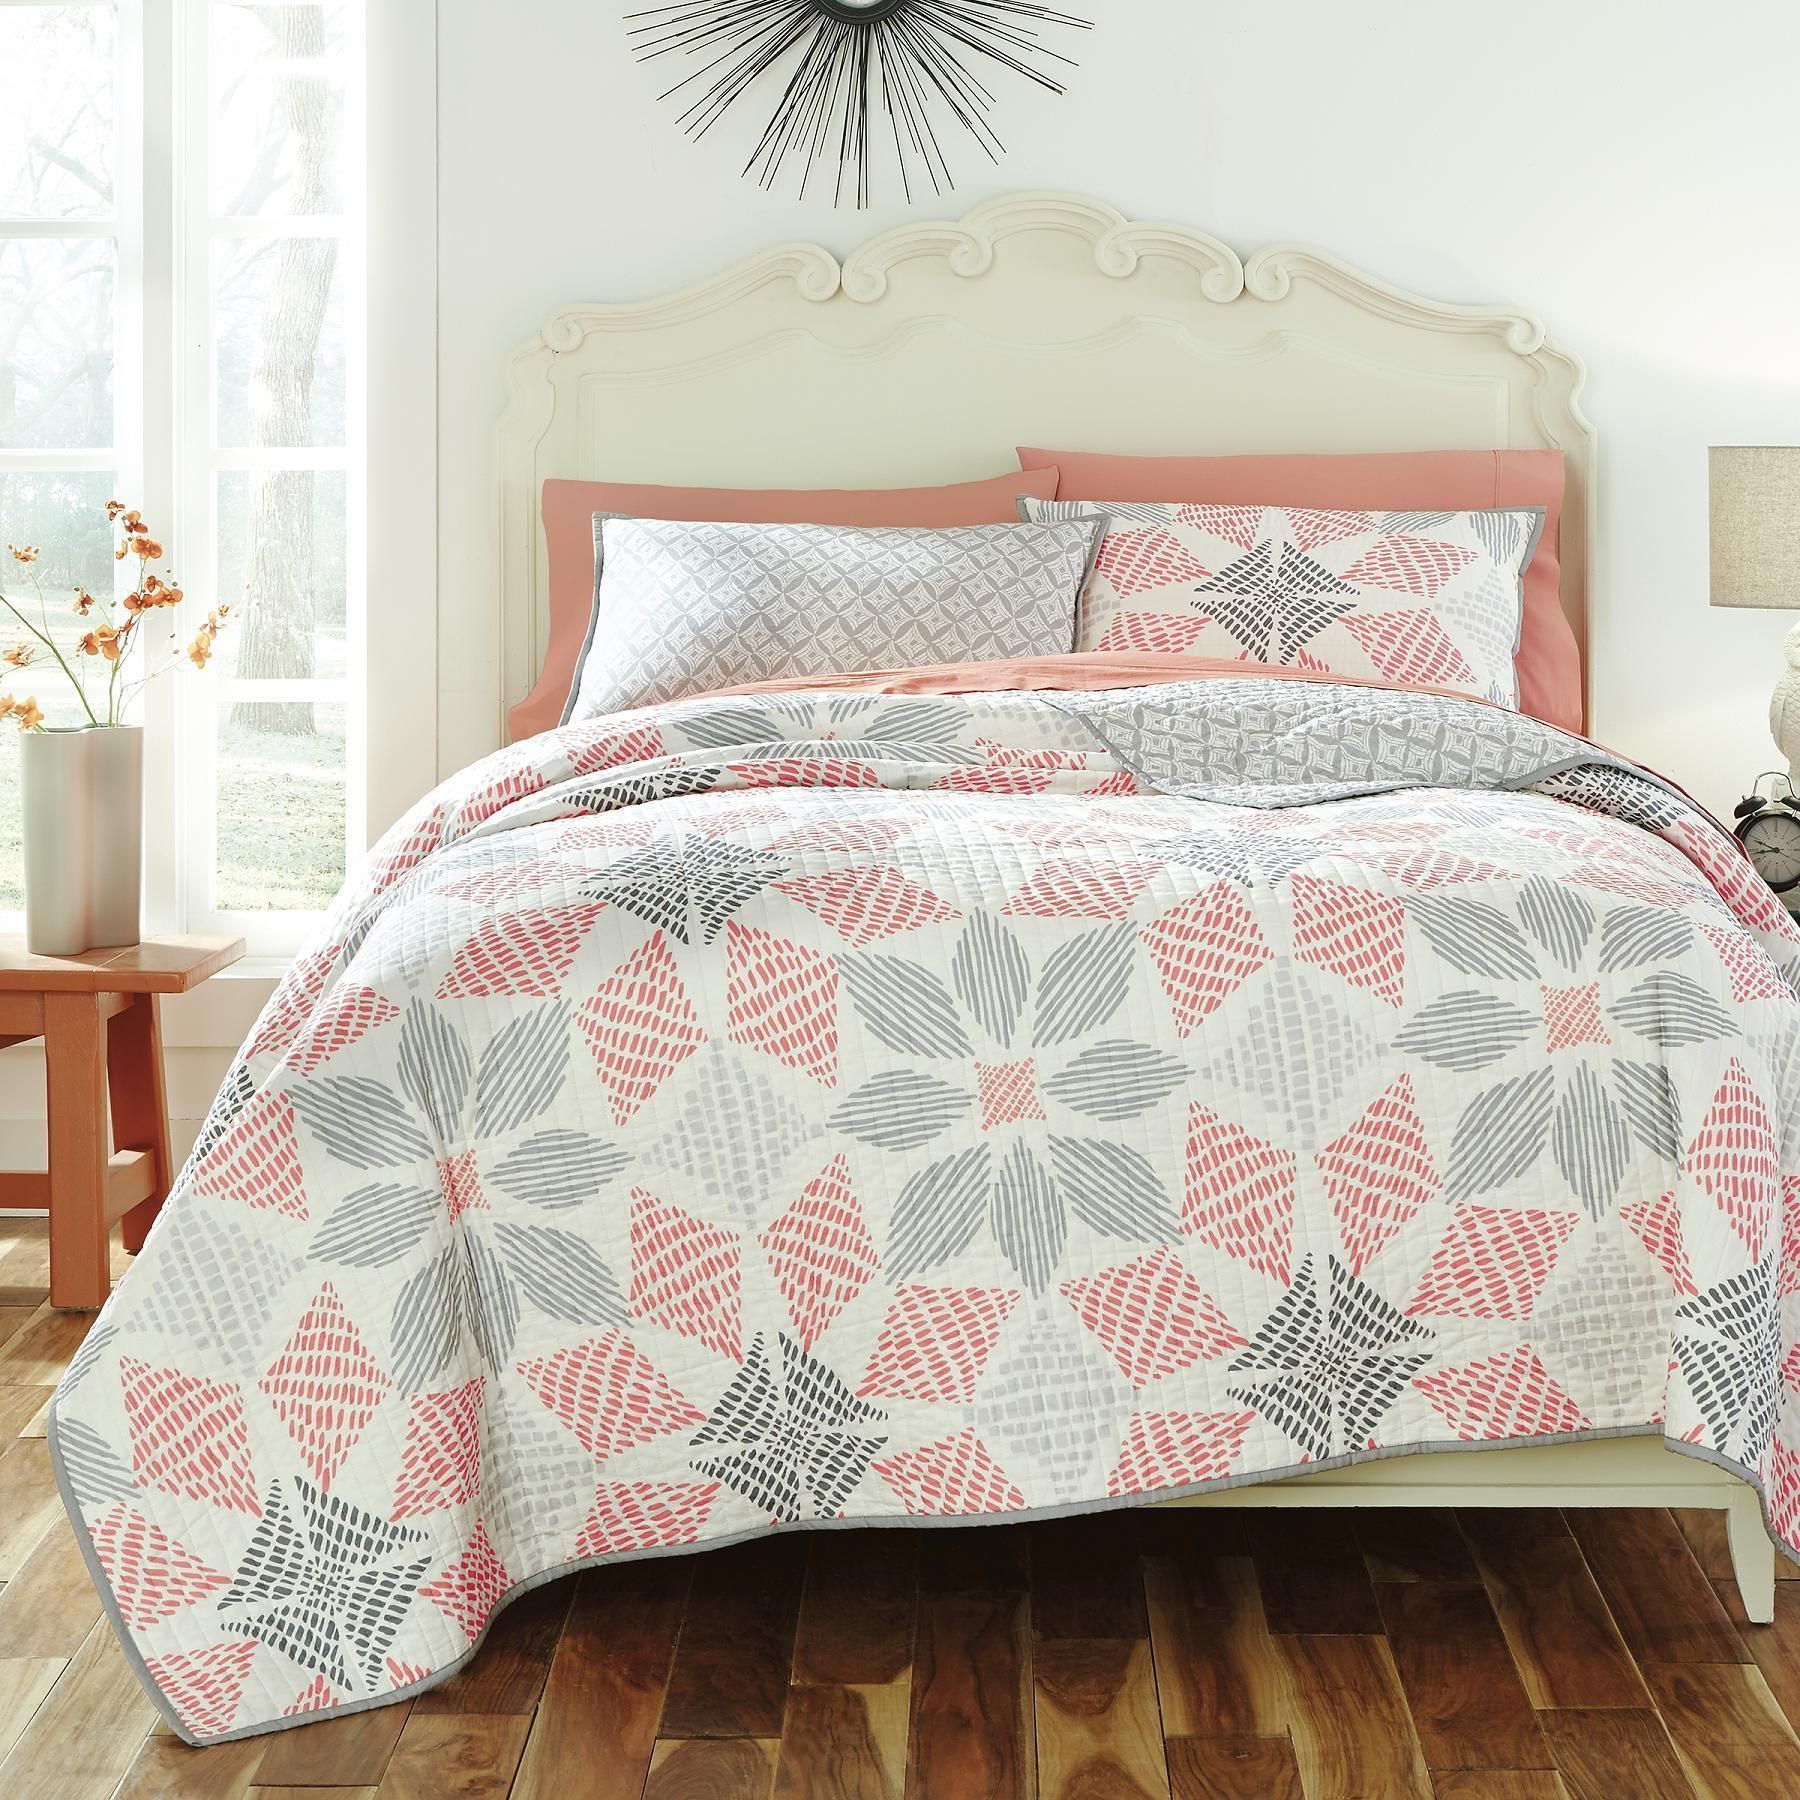 This percent pure cotton quilt features a modern oversized